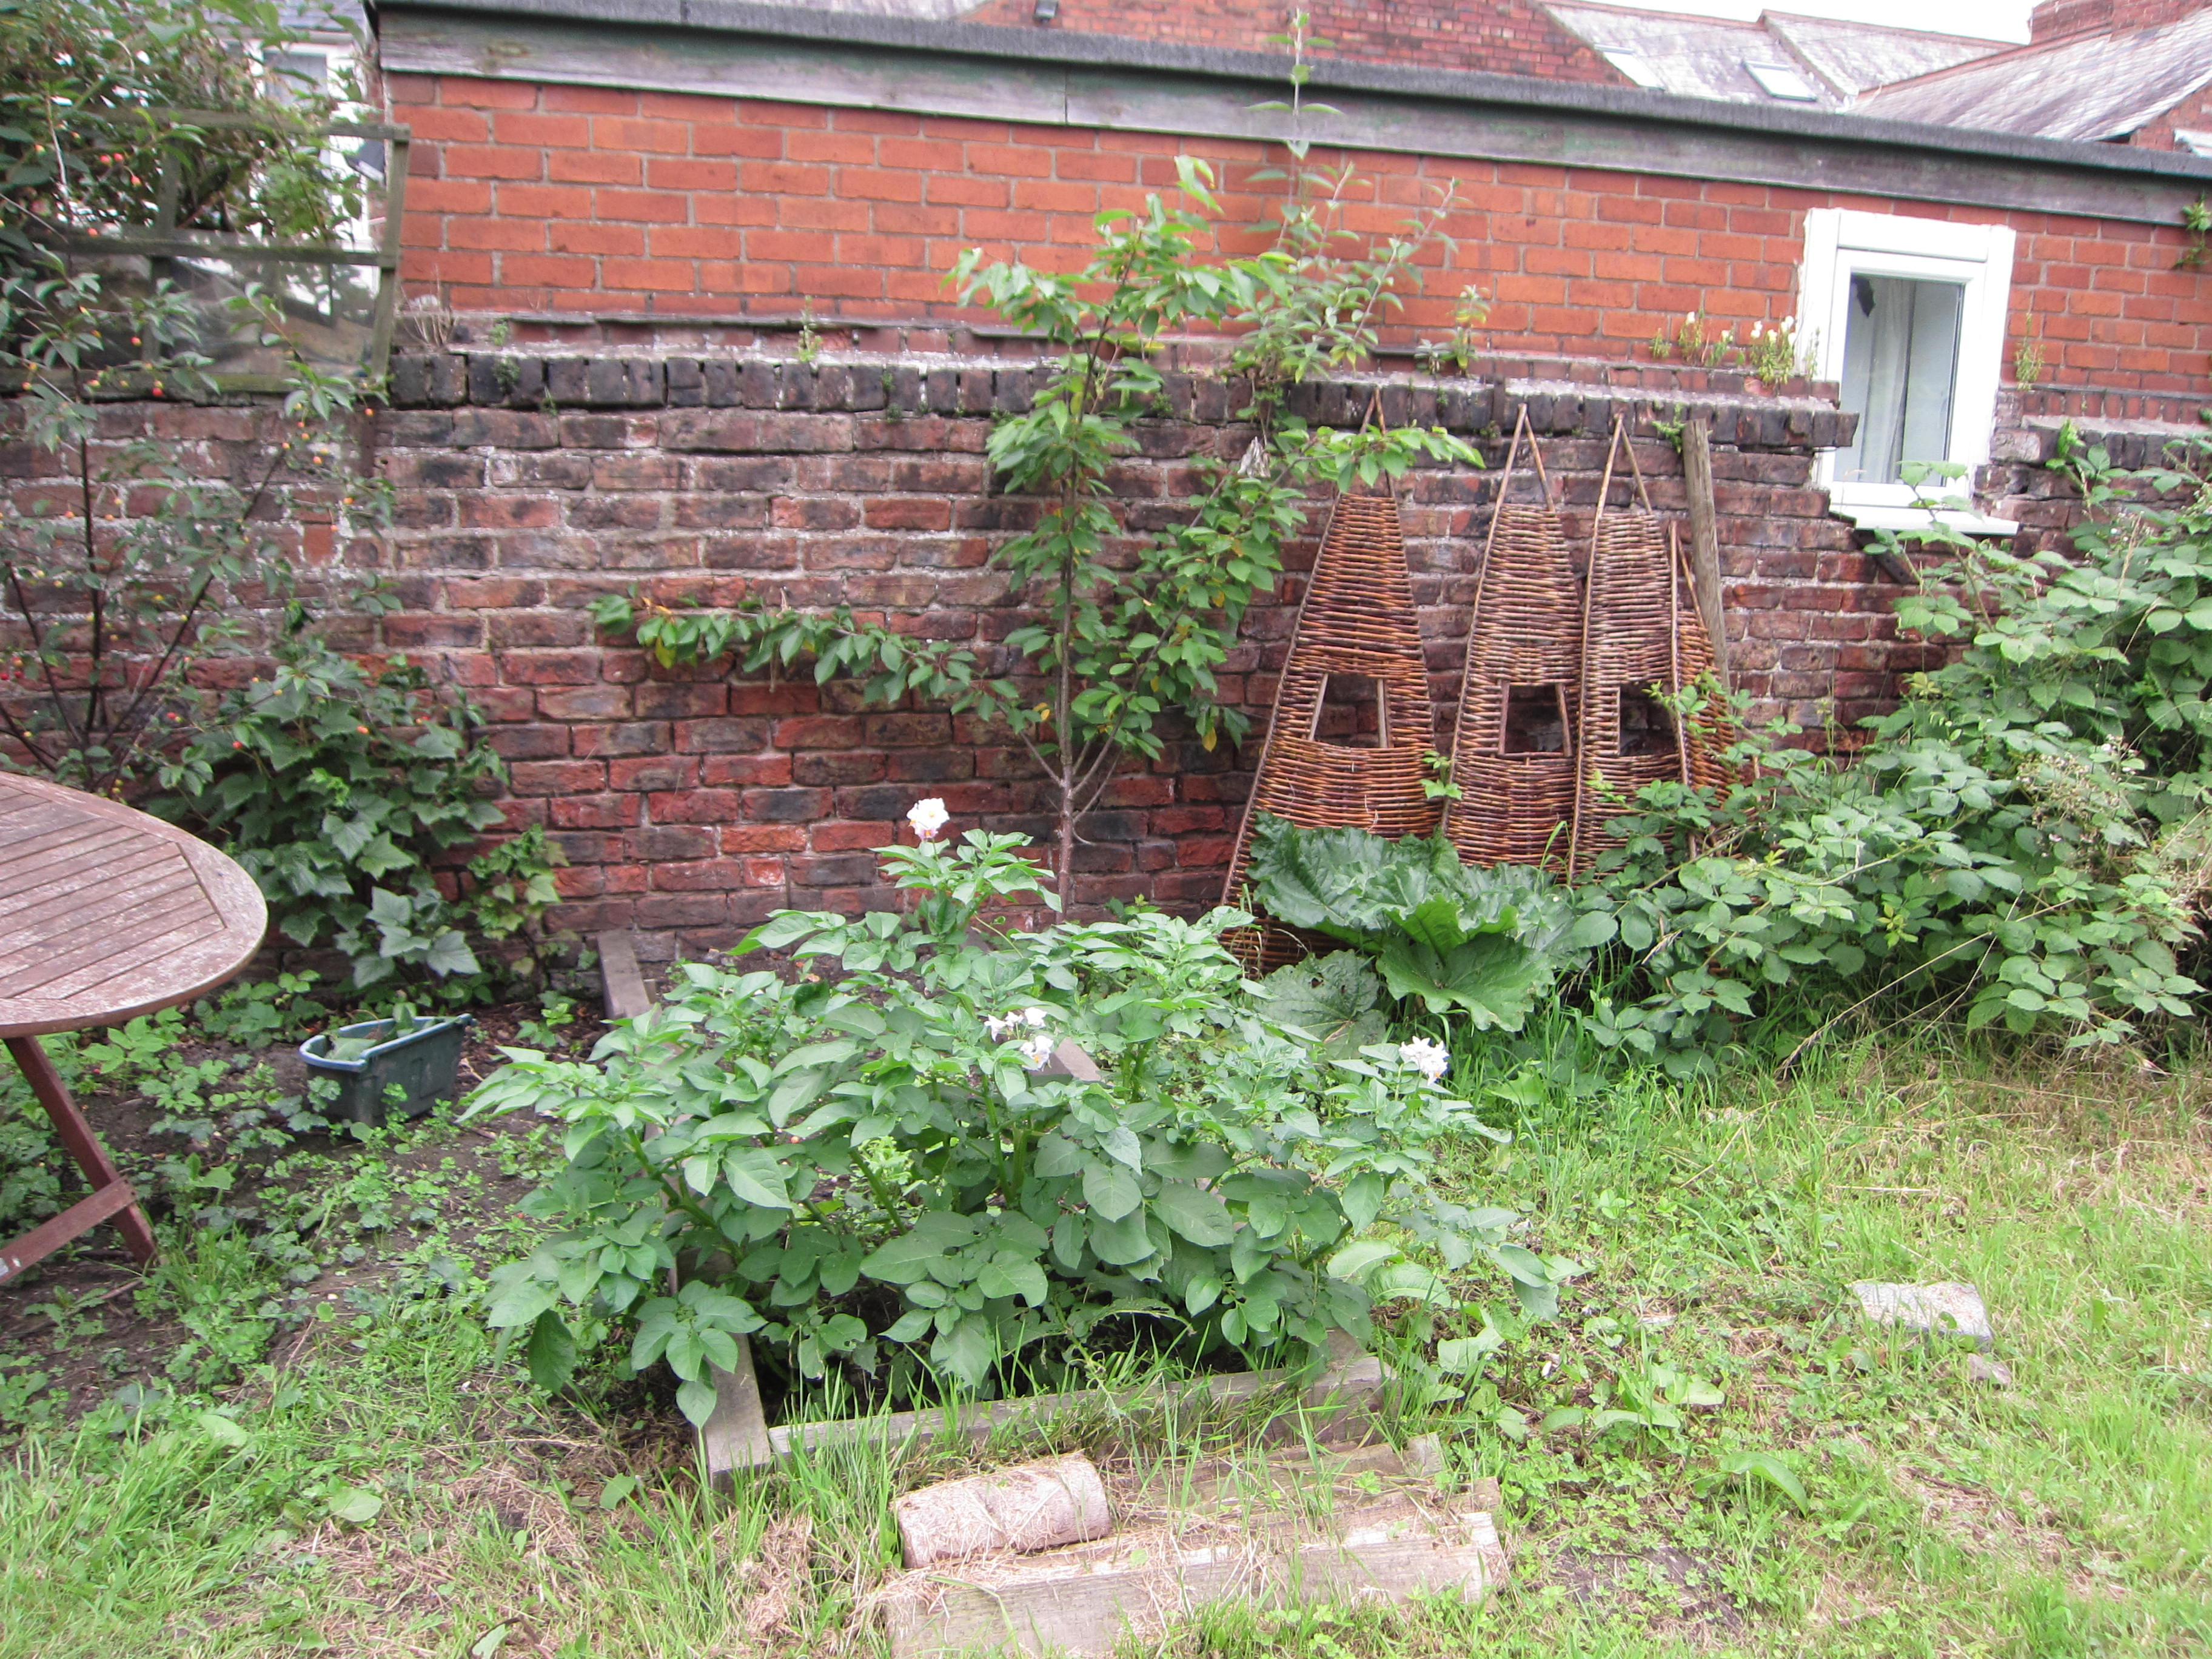 Charming trellises sit against the wall and a neighbor's window opens to the garden.